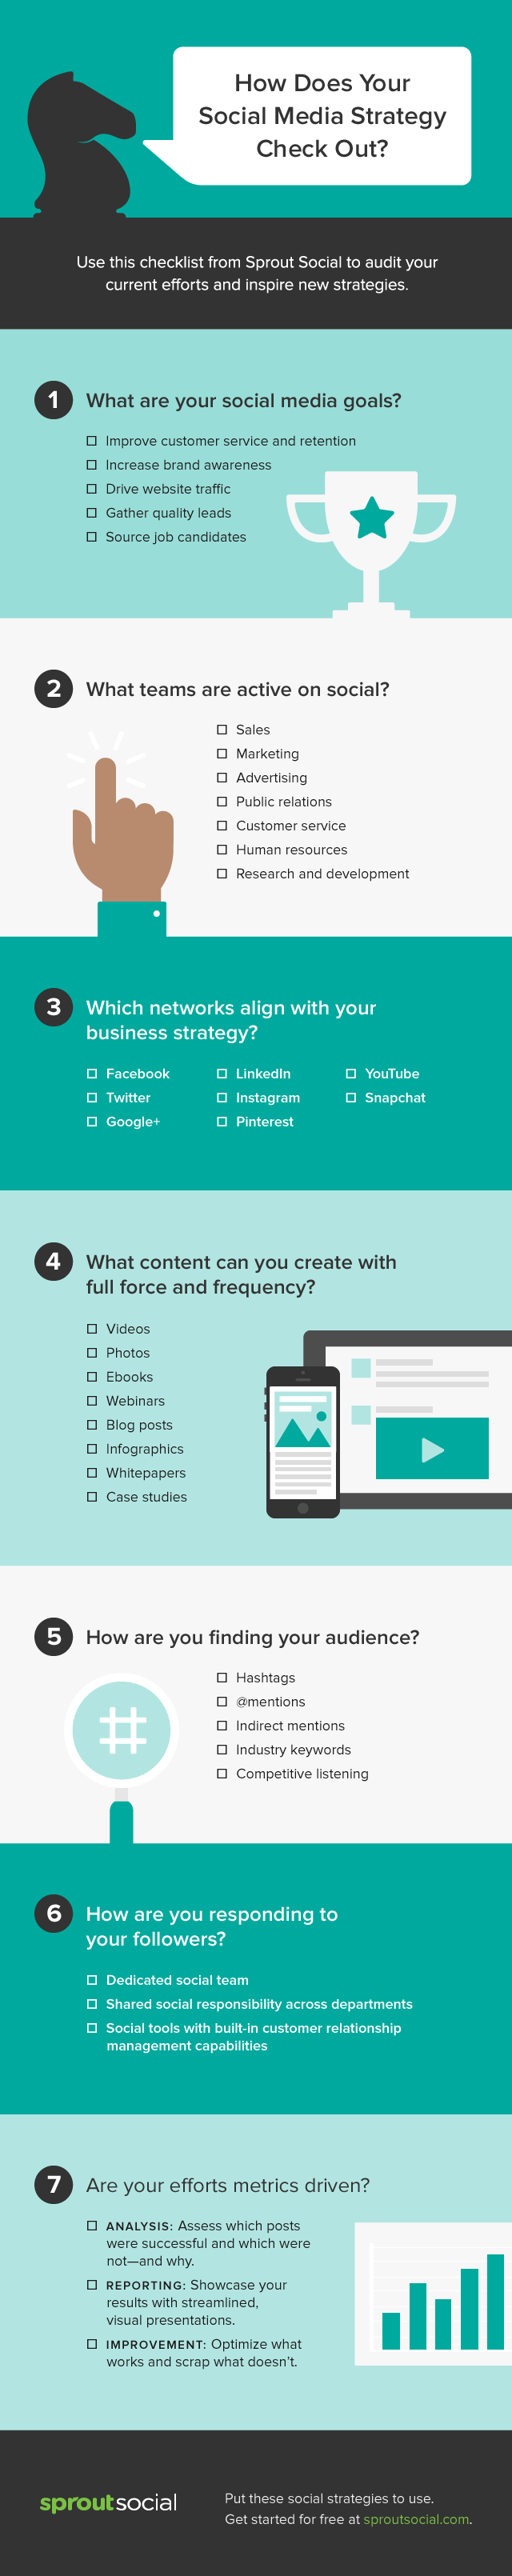 7 Steps in Creating a Winning Social Media Marketing Strategy - #infographic